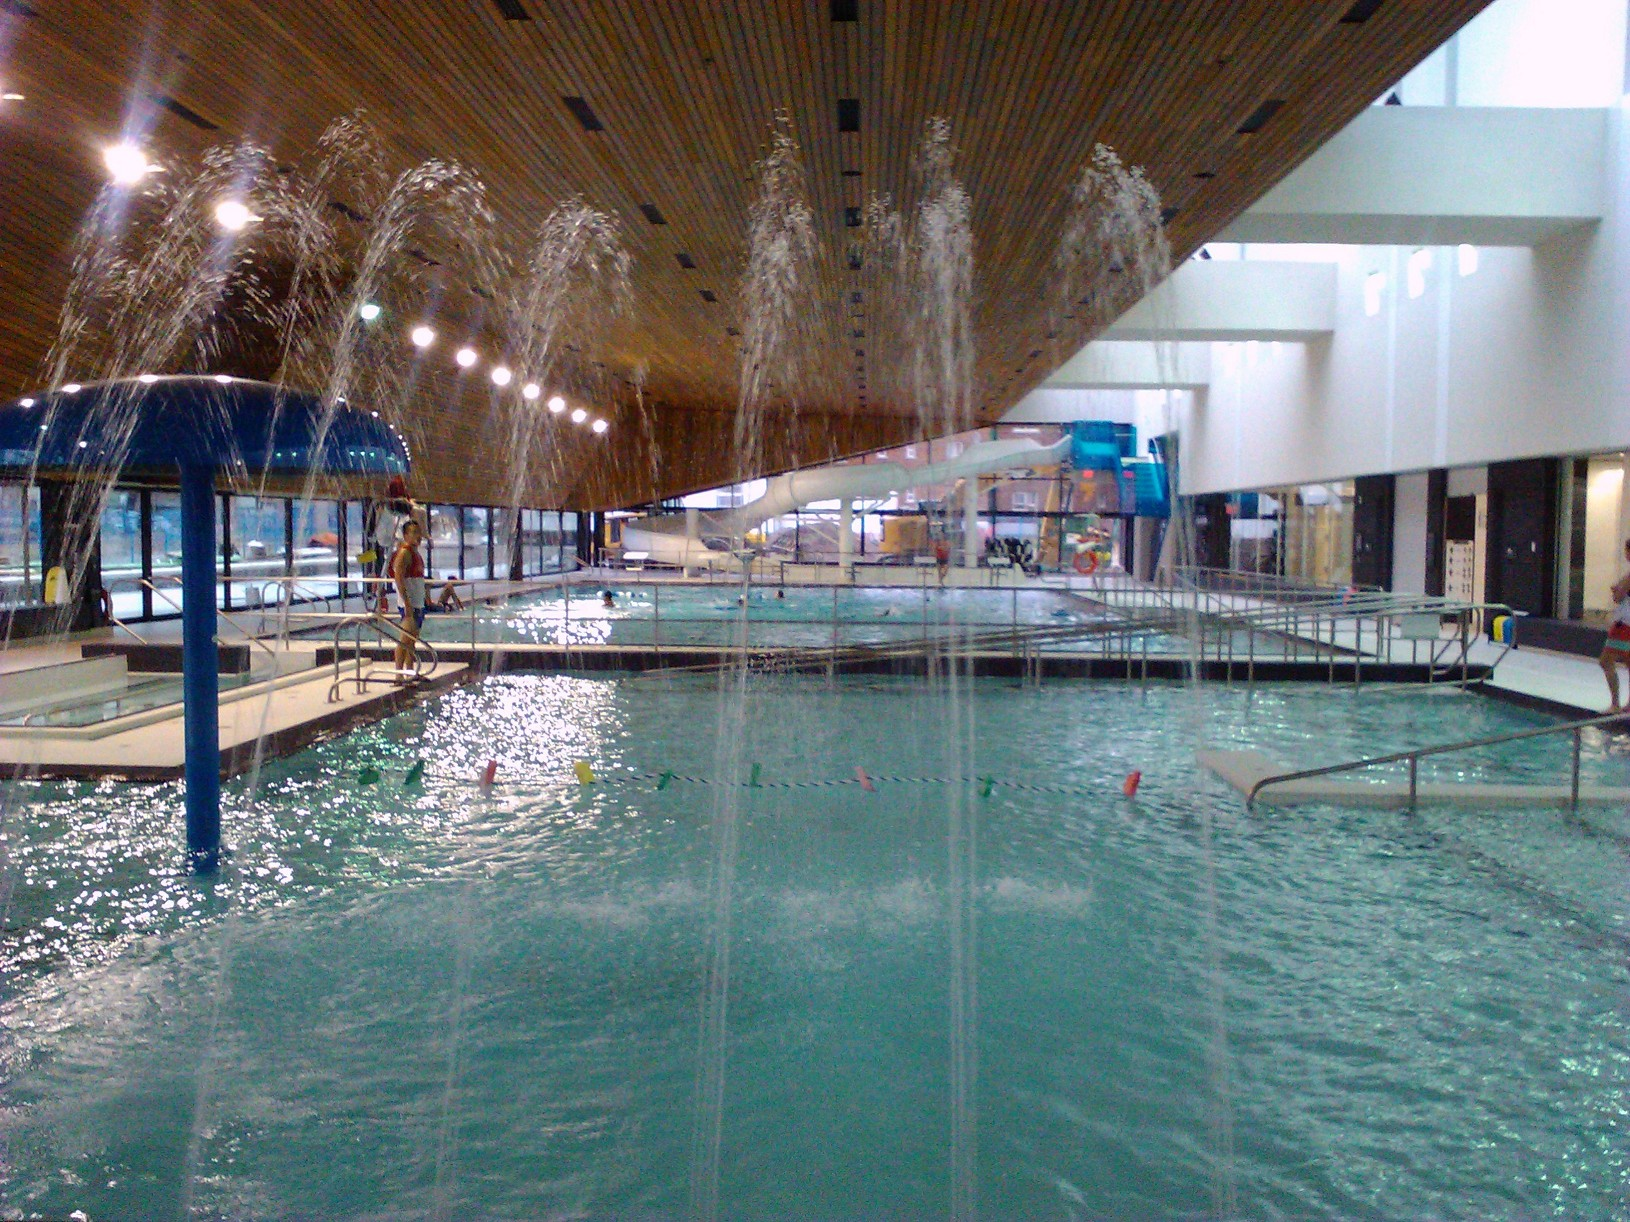 News aquatic centre makes a splash east end comedy revue distillery designers for Fairbank swimming pool toronto